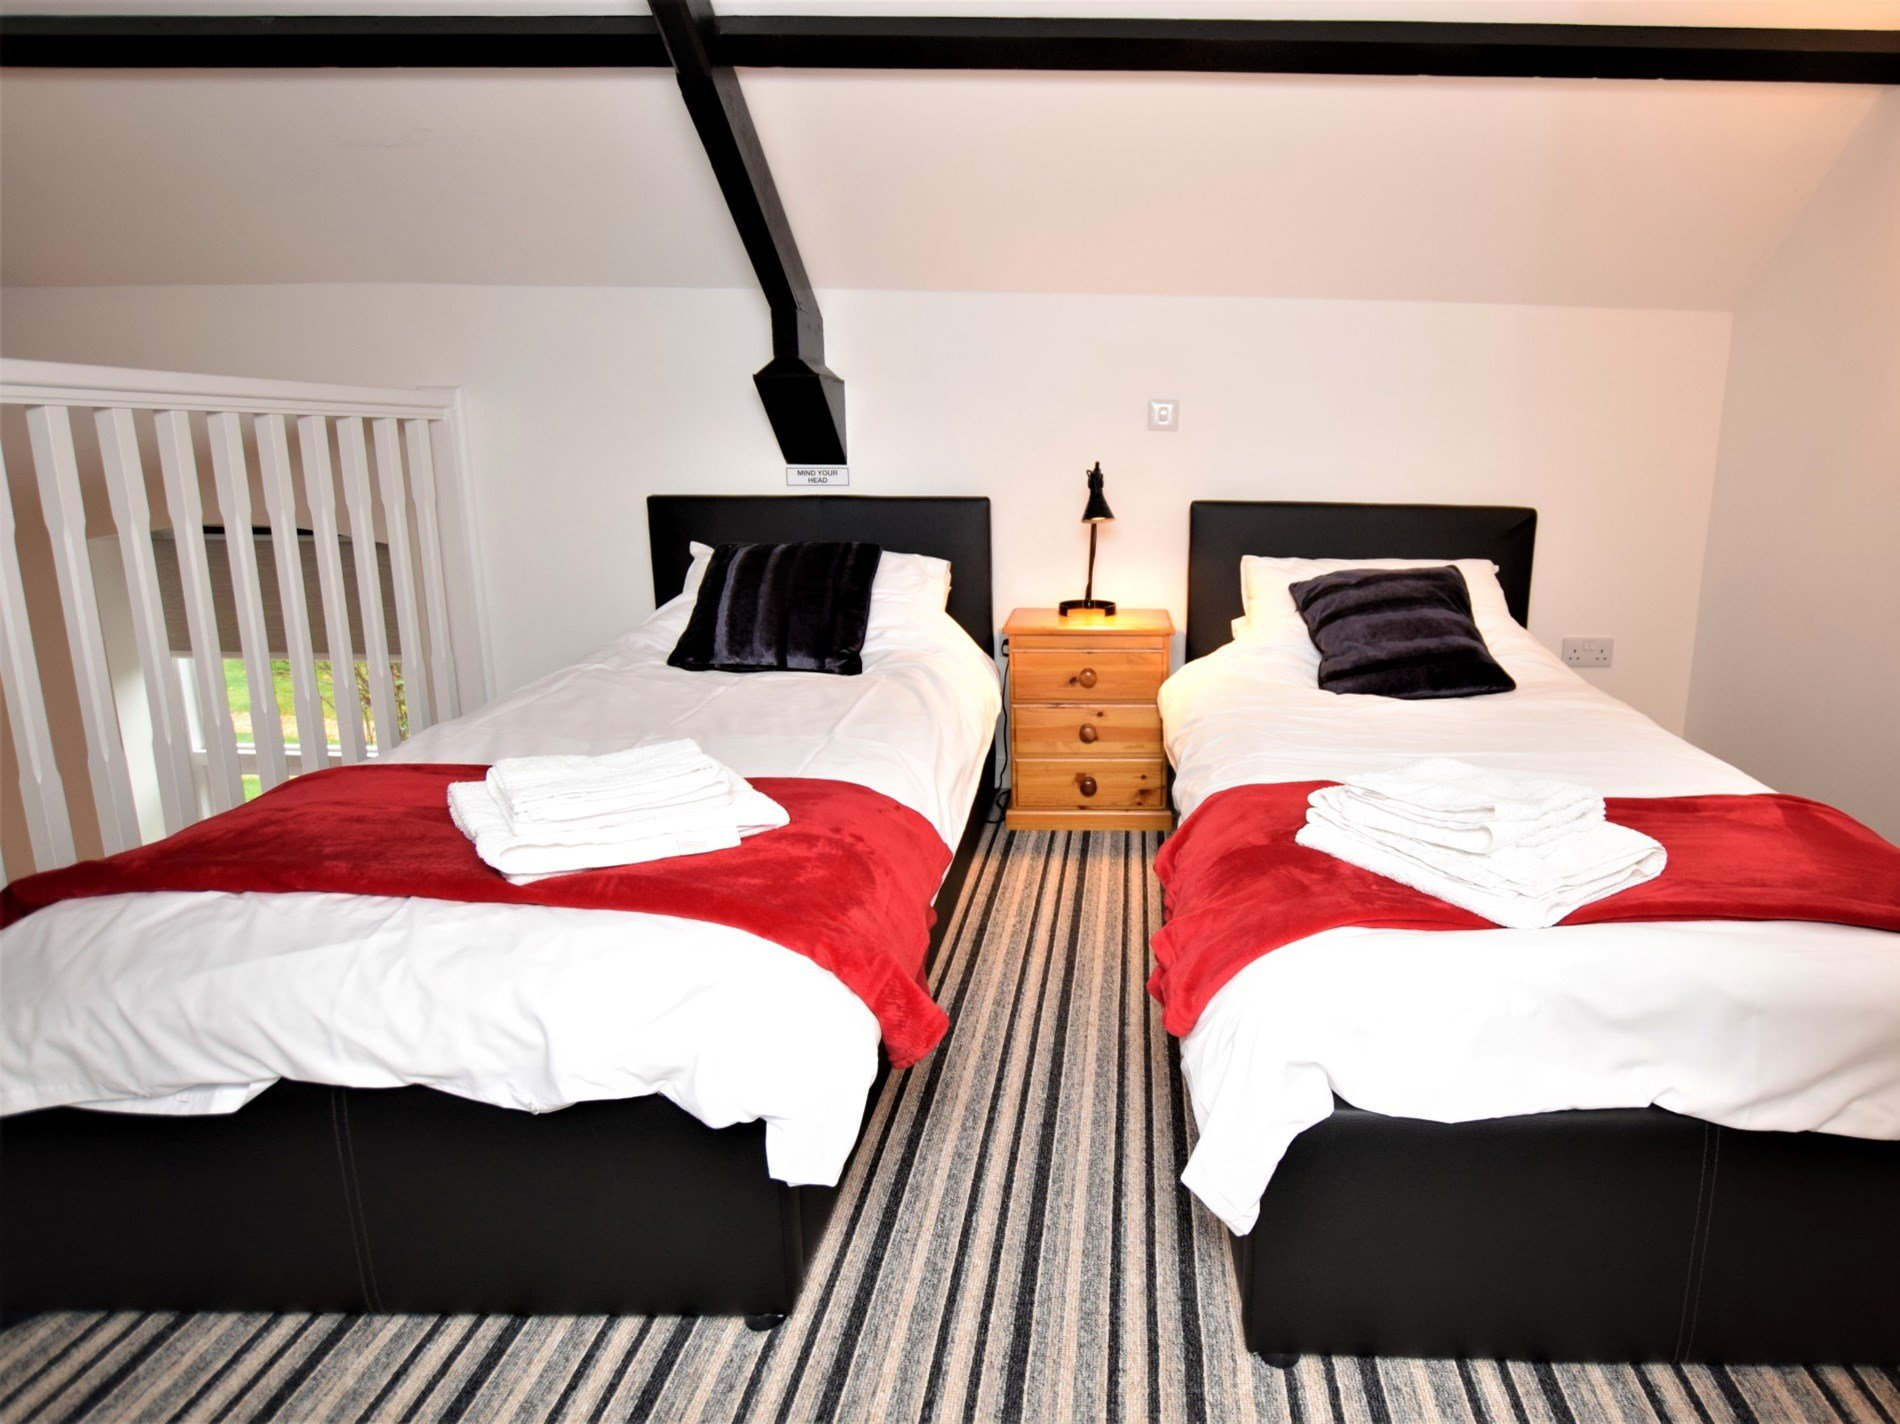 2 Bedroom Cottage in Hampshire, South of England